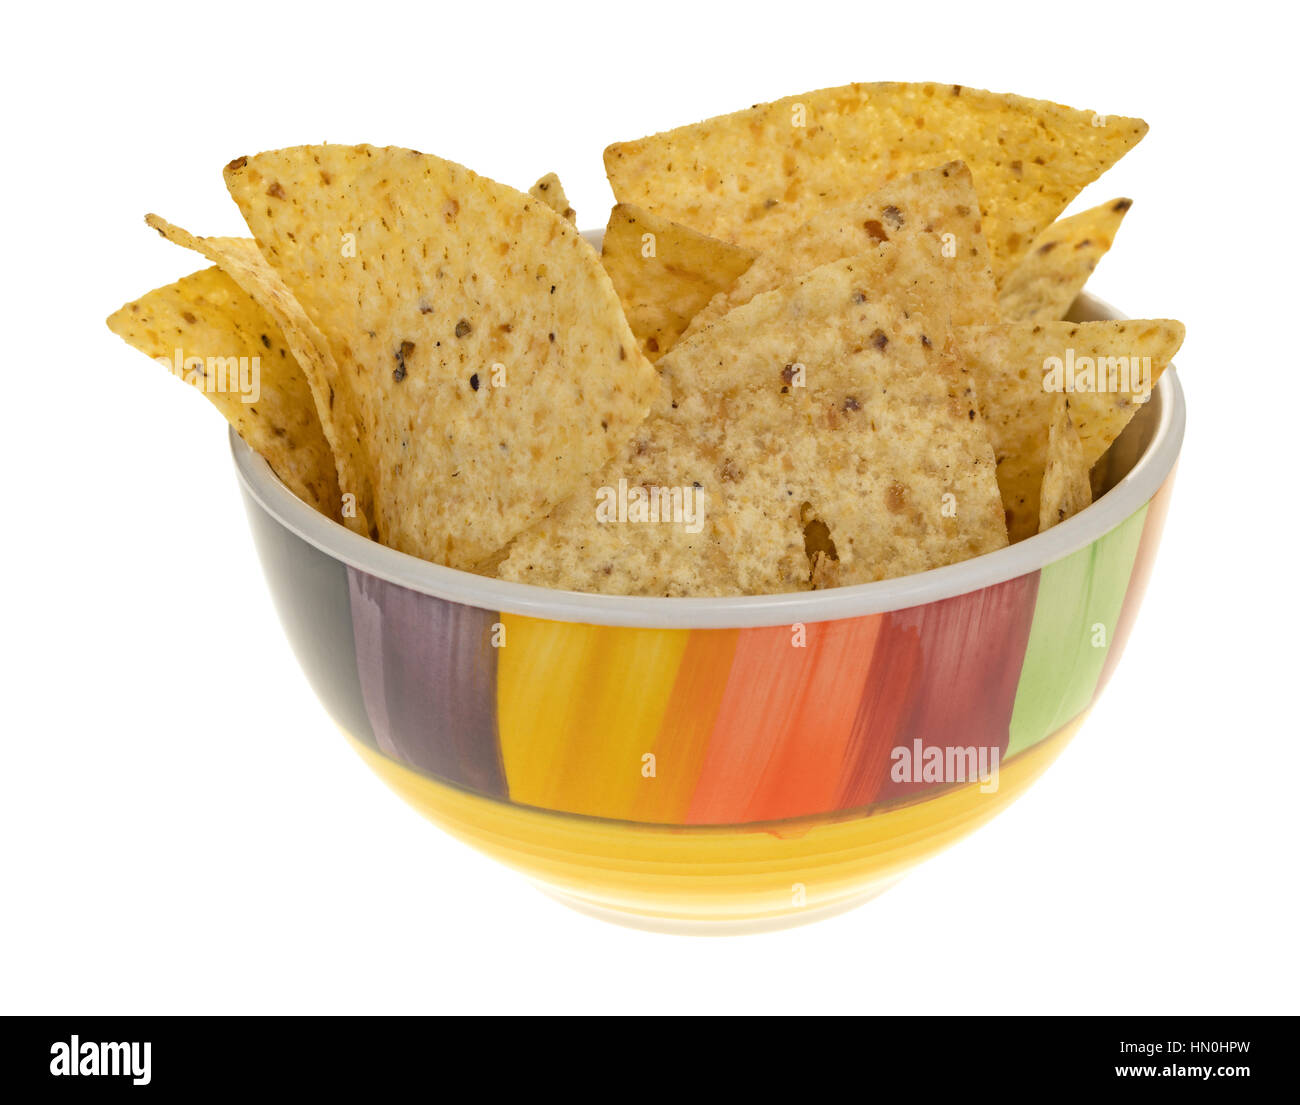 A colorful bowl filled with crispy tortilla chips isolated on a white background. - Stock Image